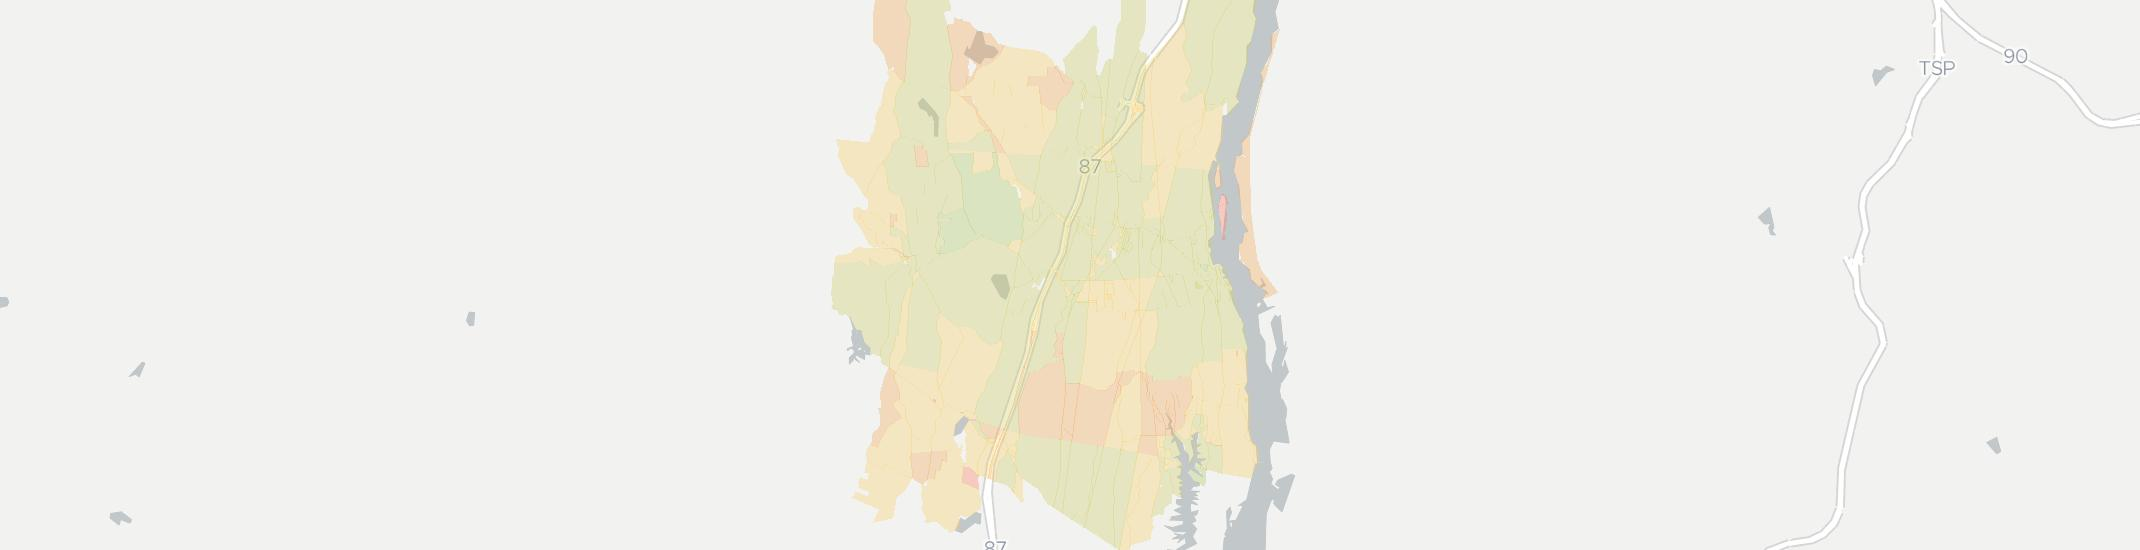 Coxsackie Internet Competition Map. Click for interactive map.